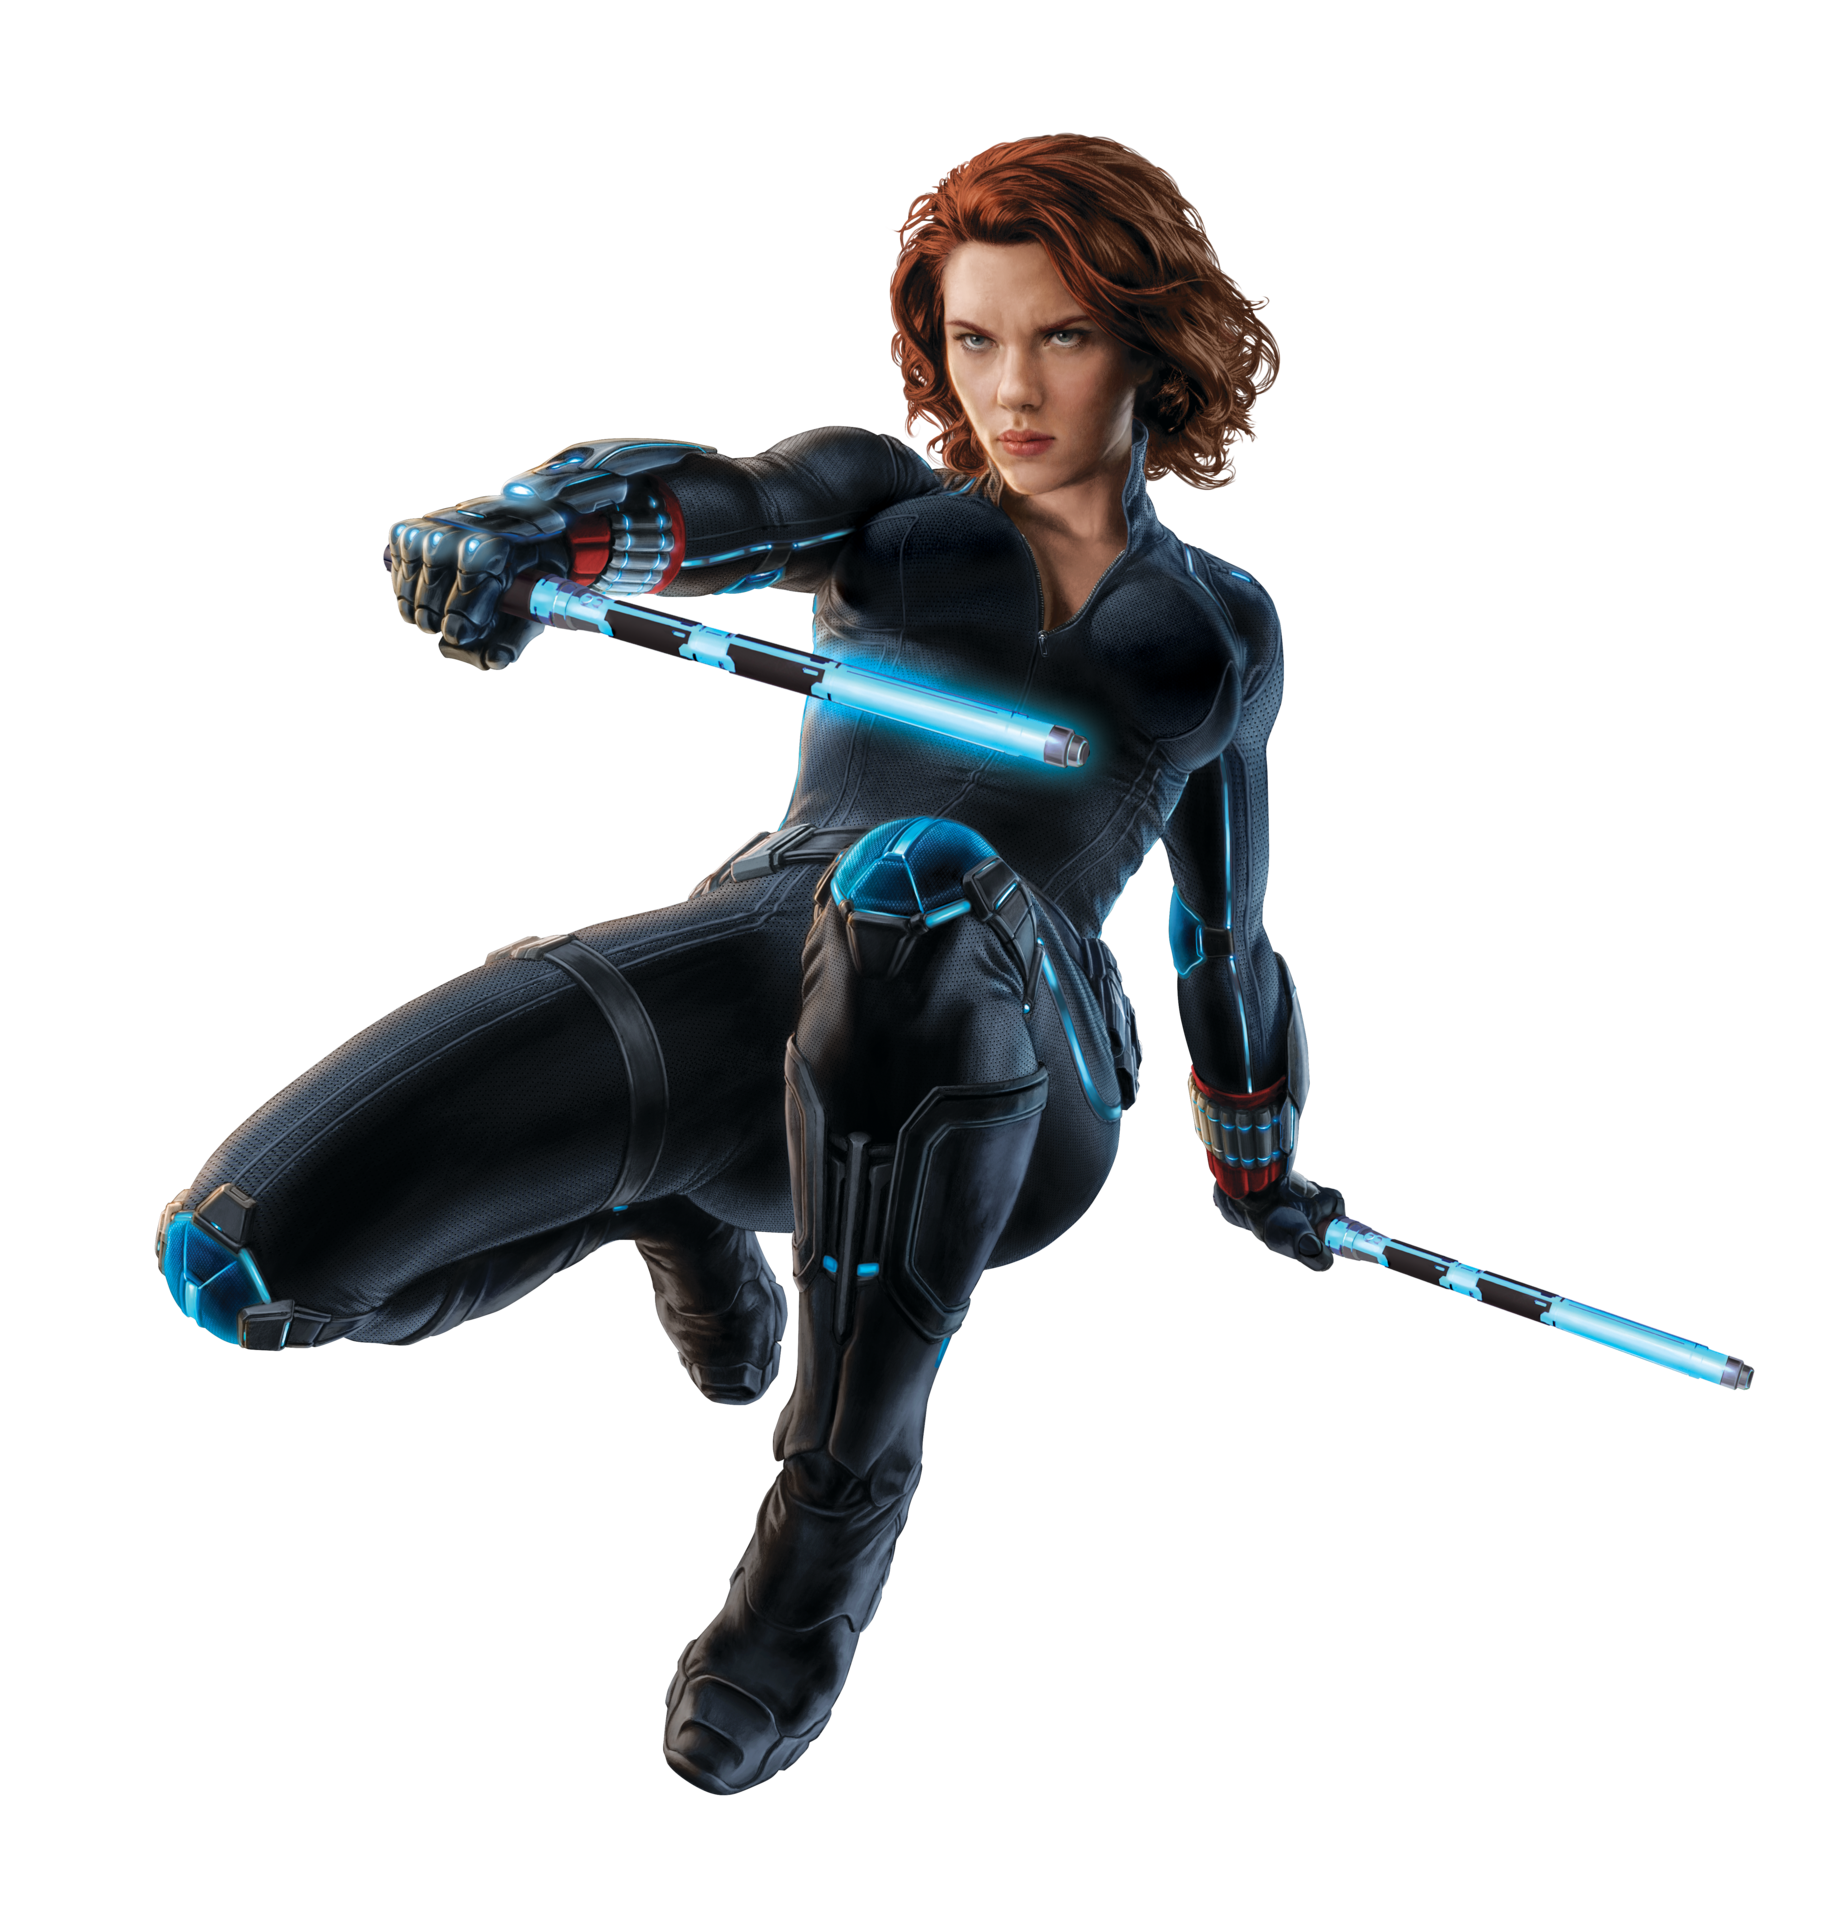 Black widow avengers png. Image aou marvel cinematic